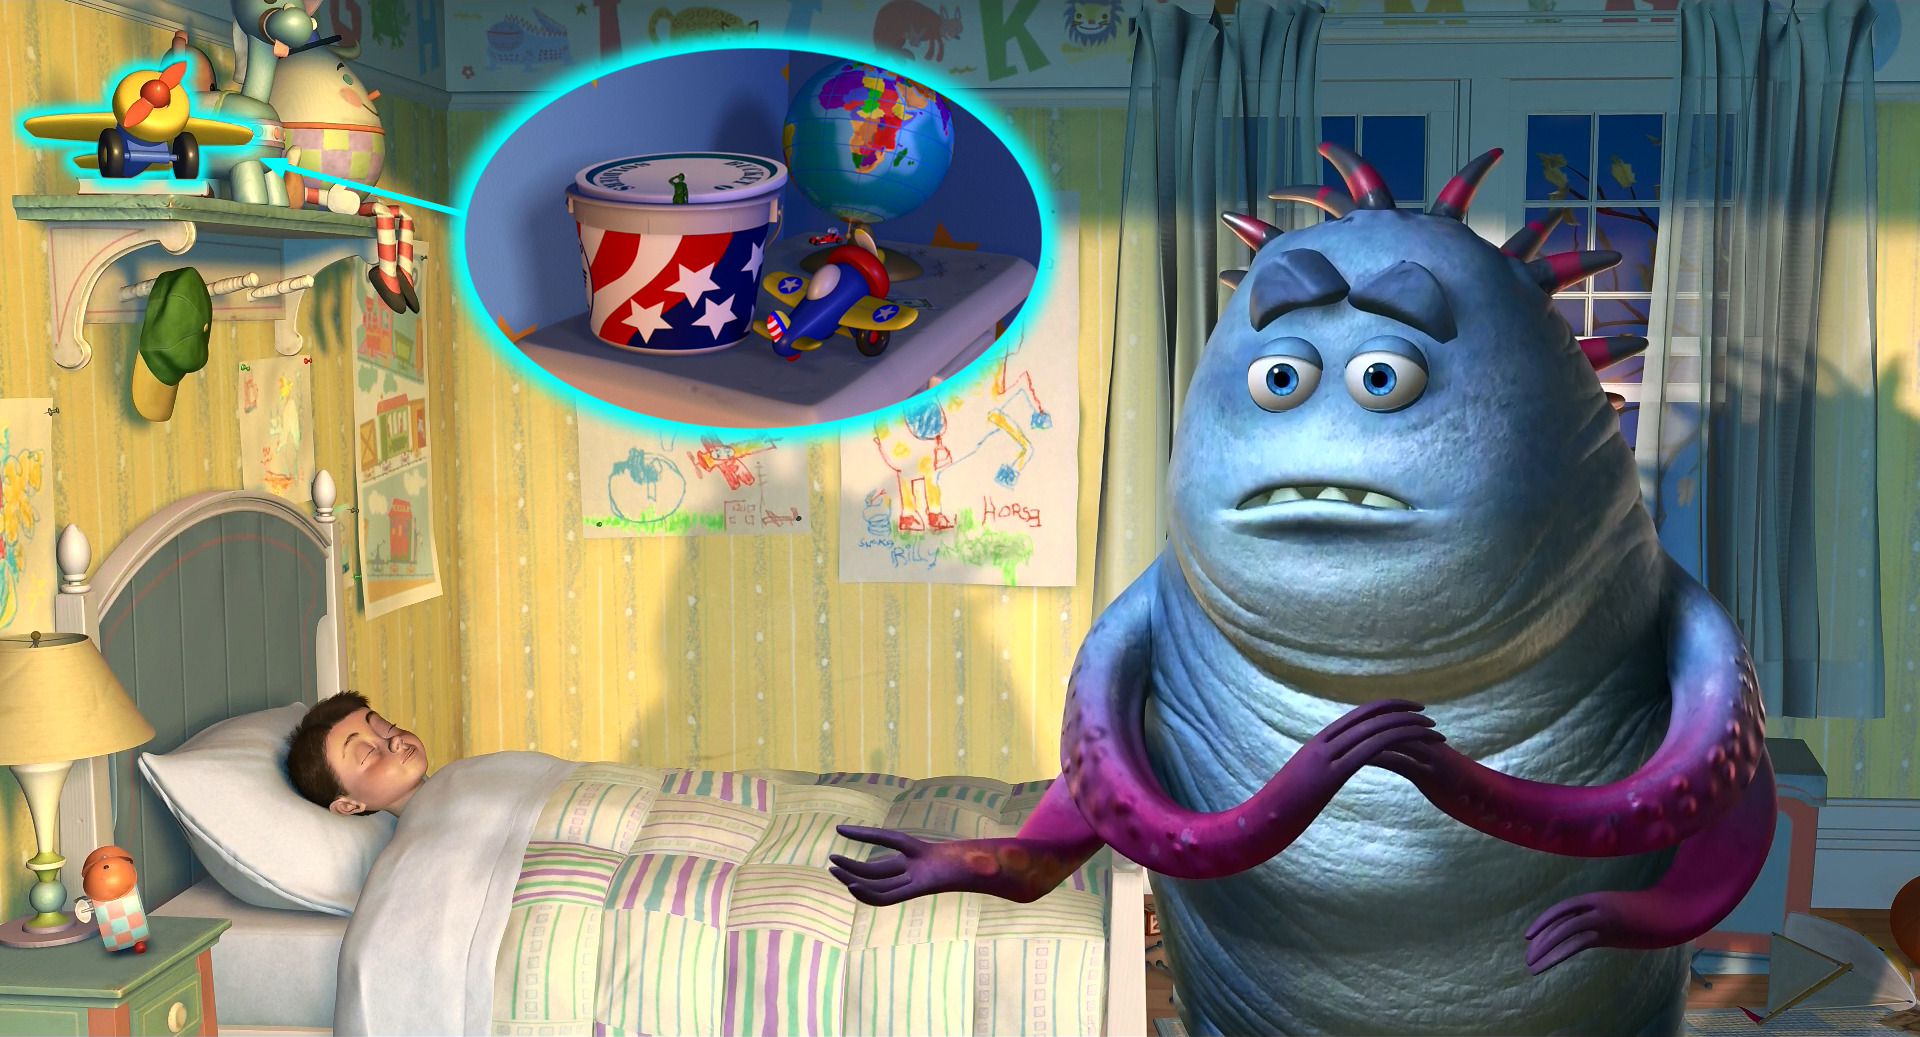 Cameos pixar en monsters inc y monsters university djbarchs monsters inc avioncito voltagebd Image collections